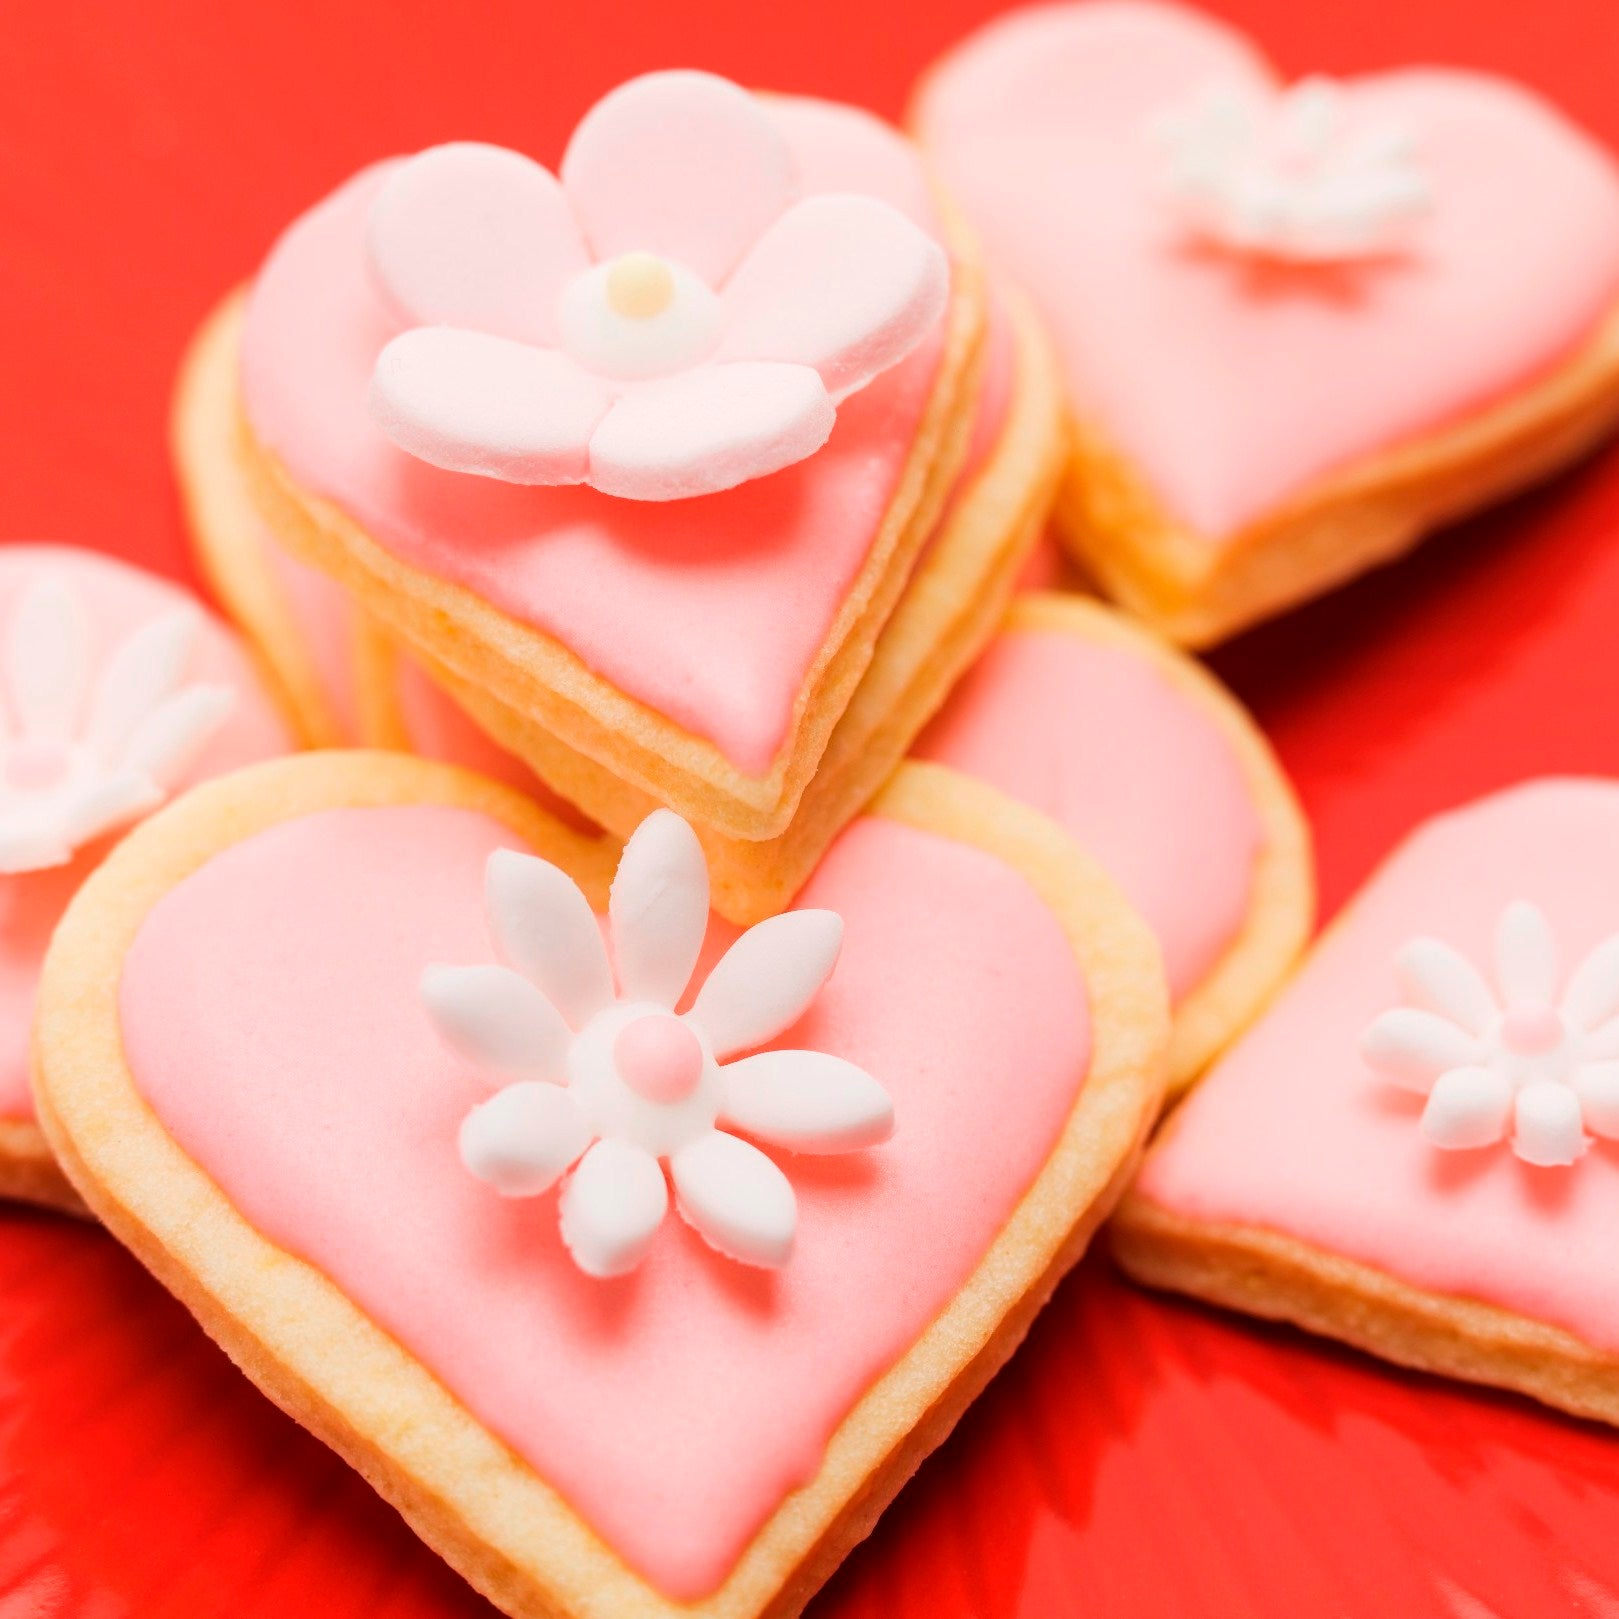 1-Almond-heart-shaped-biscuits.jpg